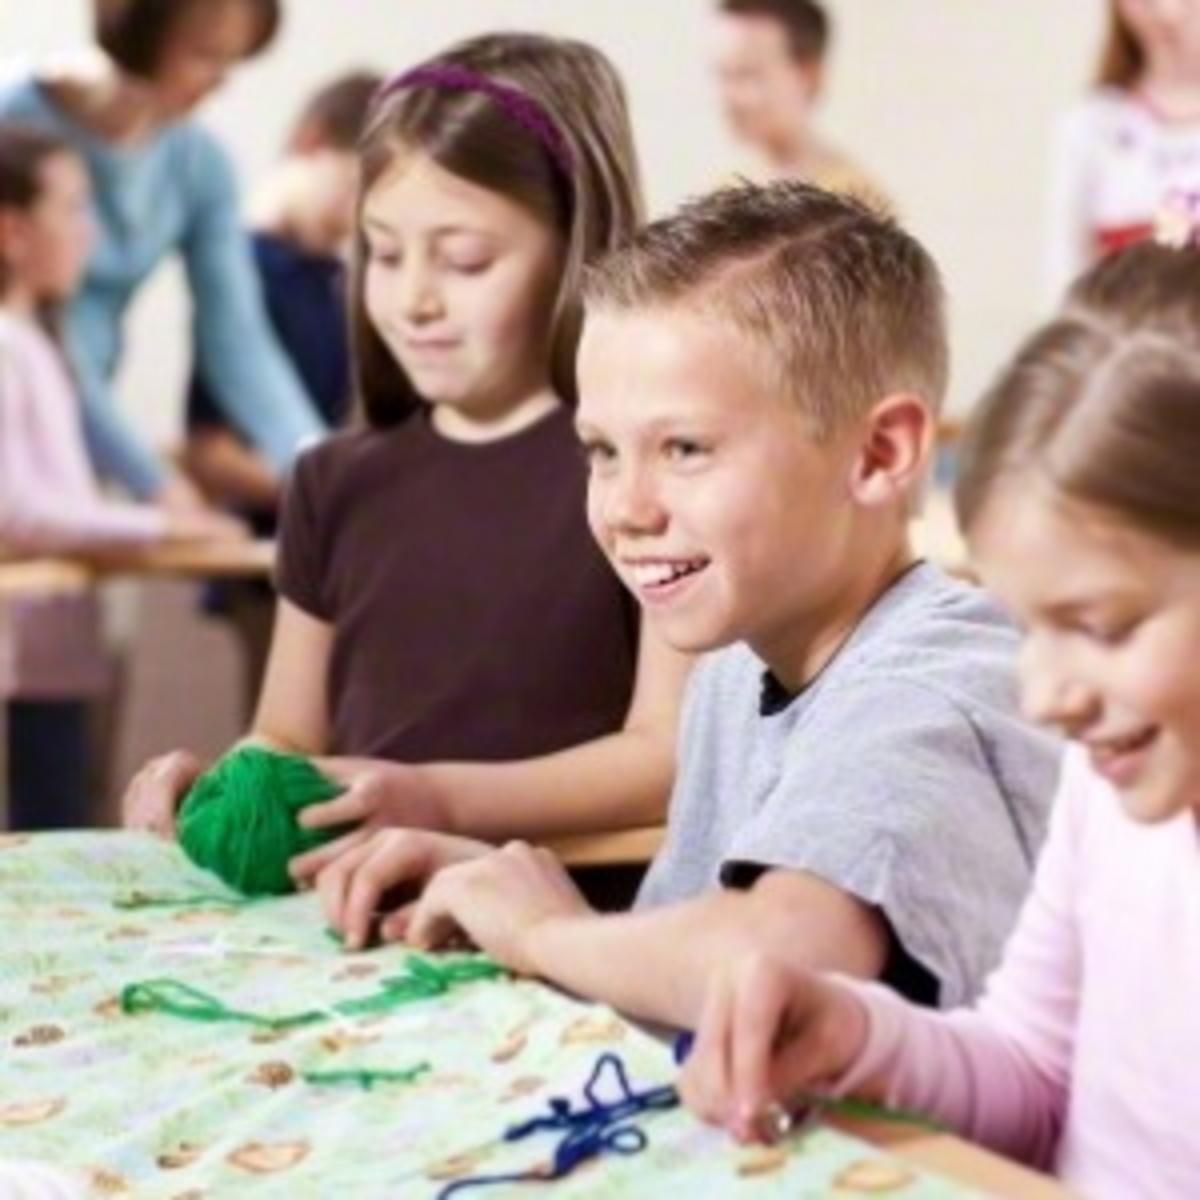 Children quilting